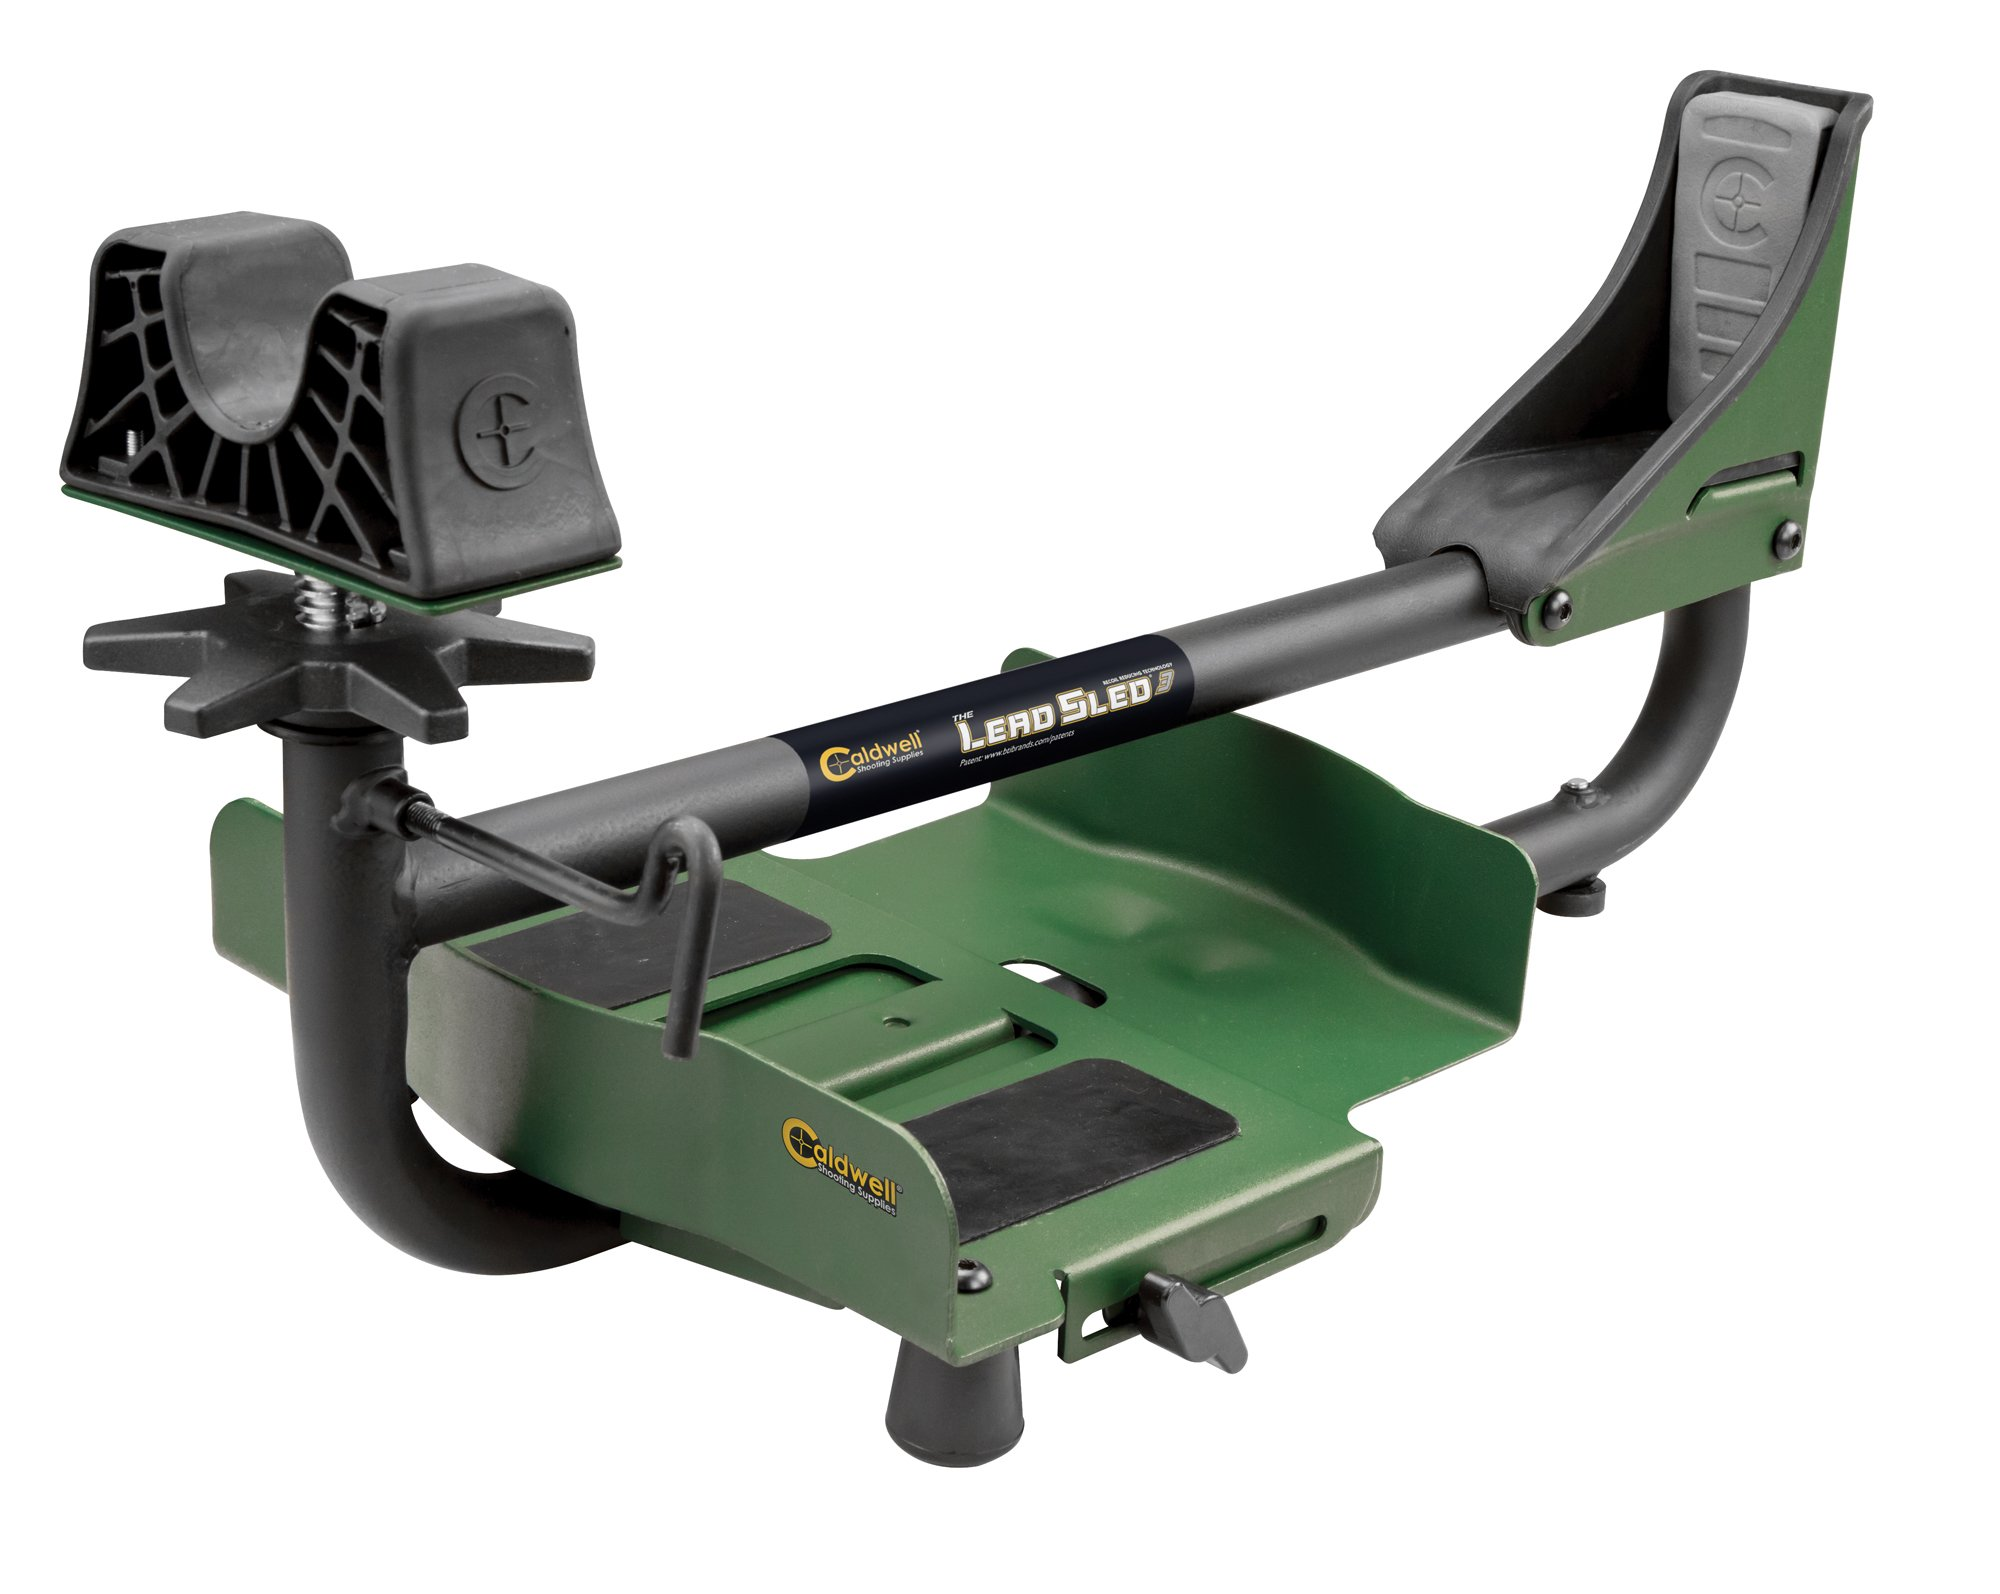 Caldwell Lead Sled 3 Adjustable Ambidextrous Recoil Reducing Rifle Shooting Rest for Outdoor Range by Caldwell